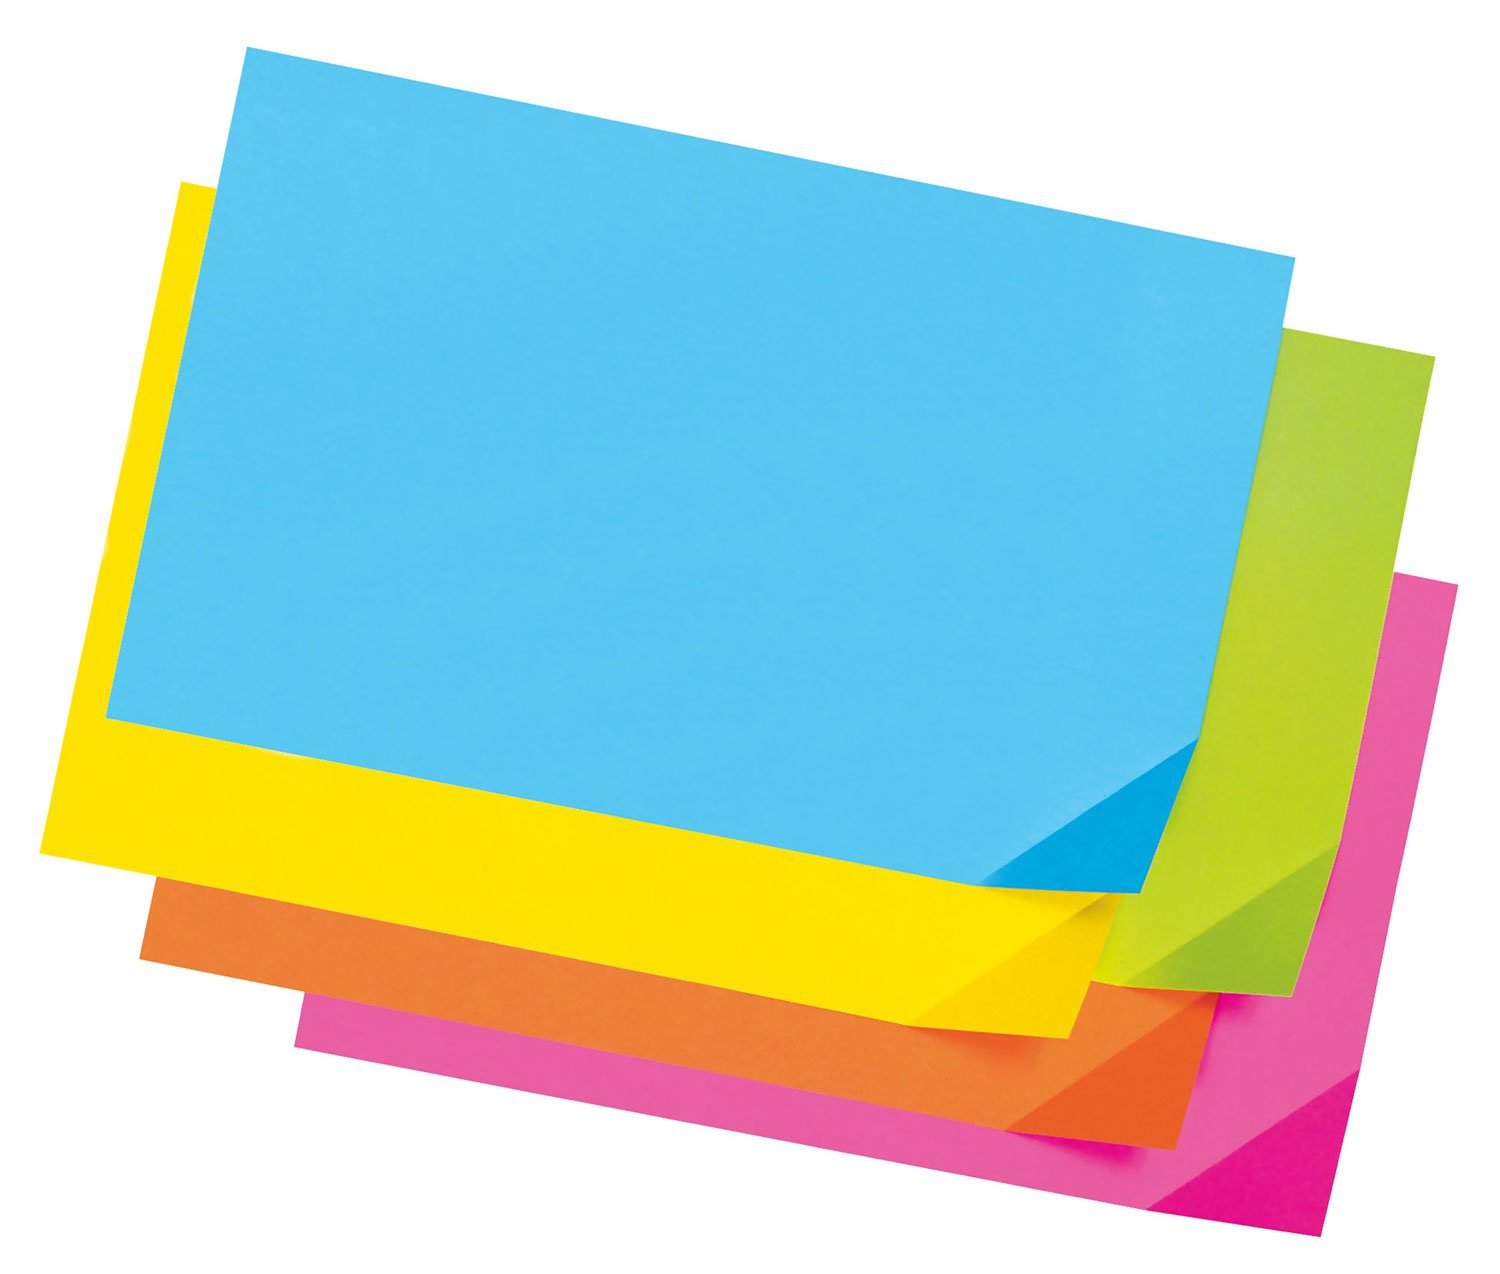 Pacon Colorwave Super Bright Tagboard, 12 x 18 Inches, Assorted Colors, 100 Sheets (1712) Pacon Corp.